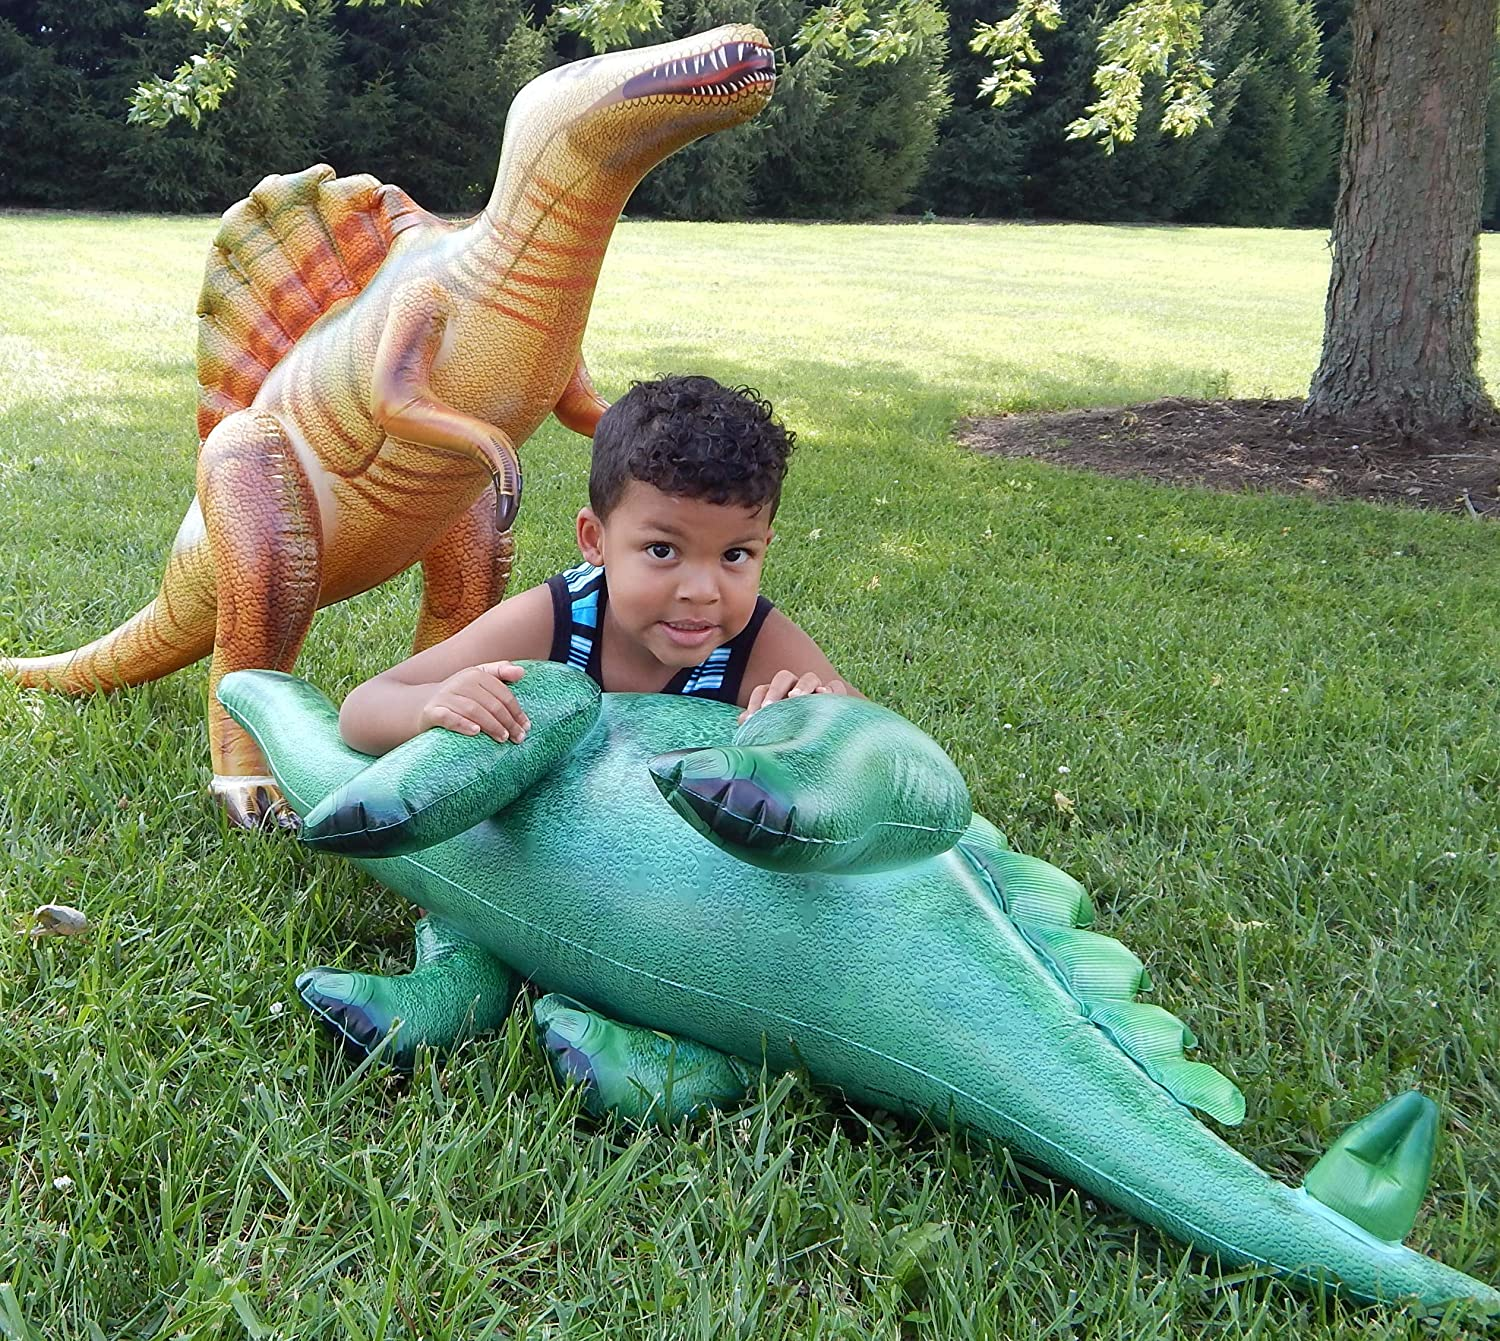 Inflatable Dinosaurs Toys by Jet Creations for Creative Play and Birthday Party Supplies with 24 Temporary Tattoos